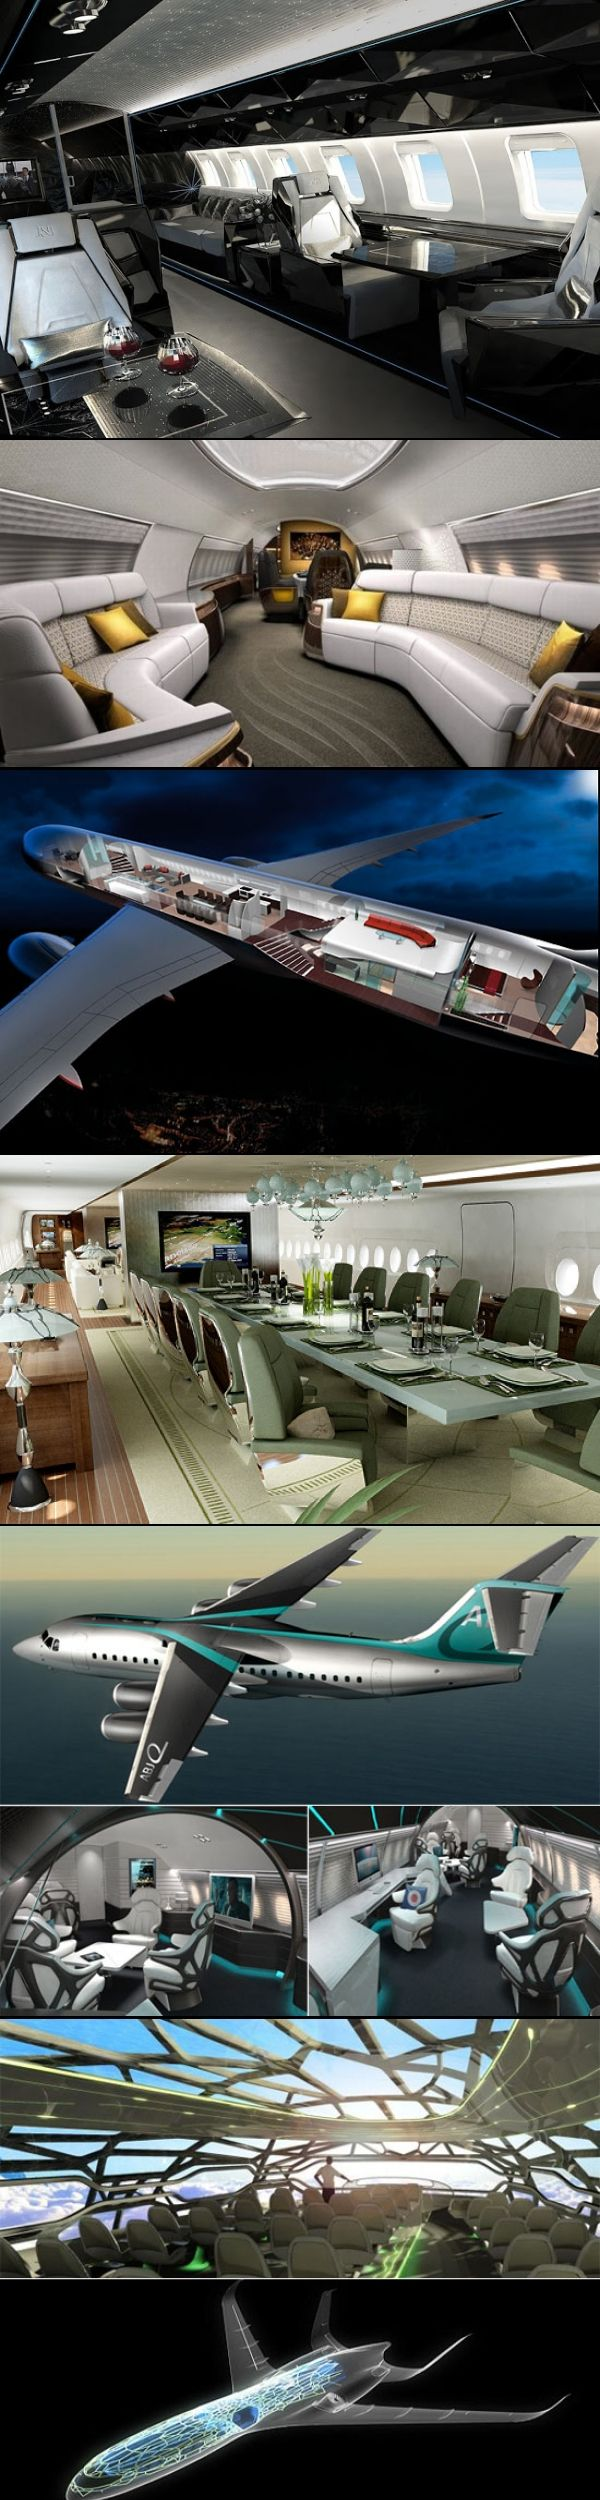 Luxury jets LBV